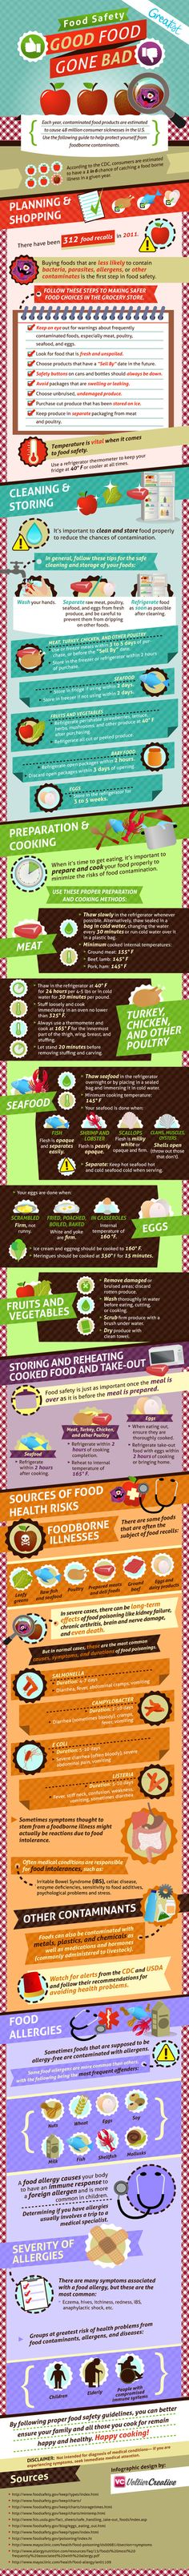 """A quick infographic from FriendsEat about keeping your food safe. """"It's not an easy job. We always want clean and safe food, so we seek advice and solutions to keep them appetizing for as long as possible."""""""